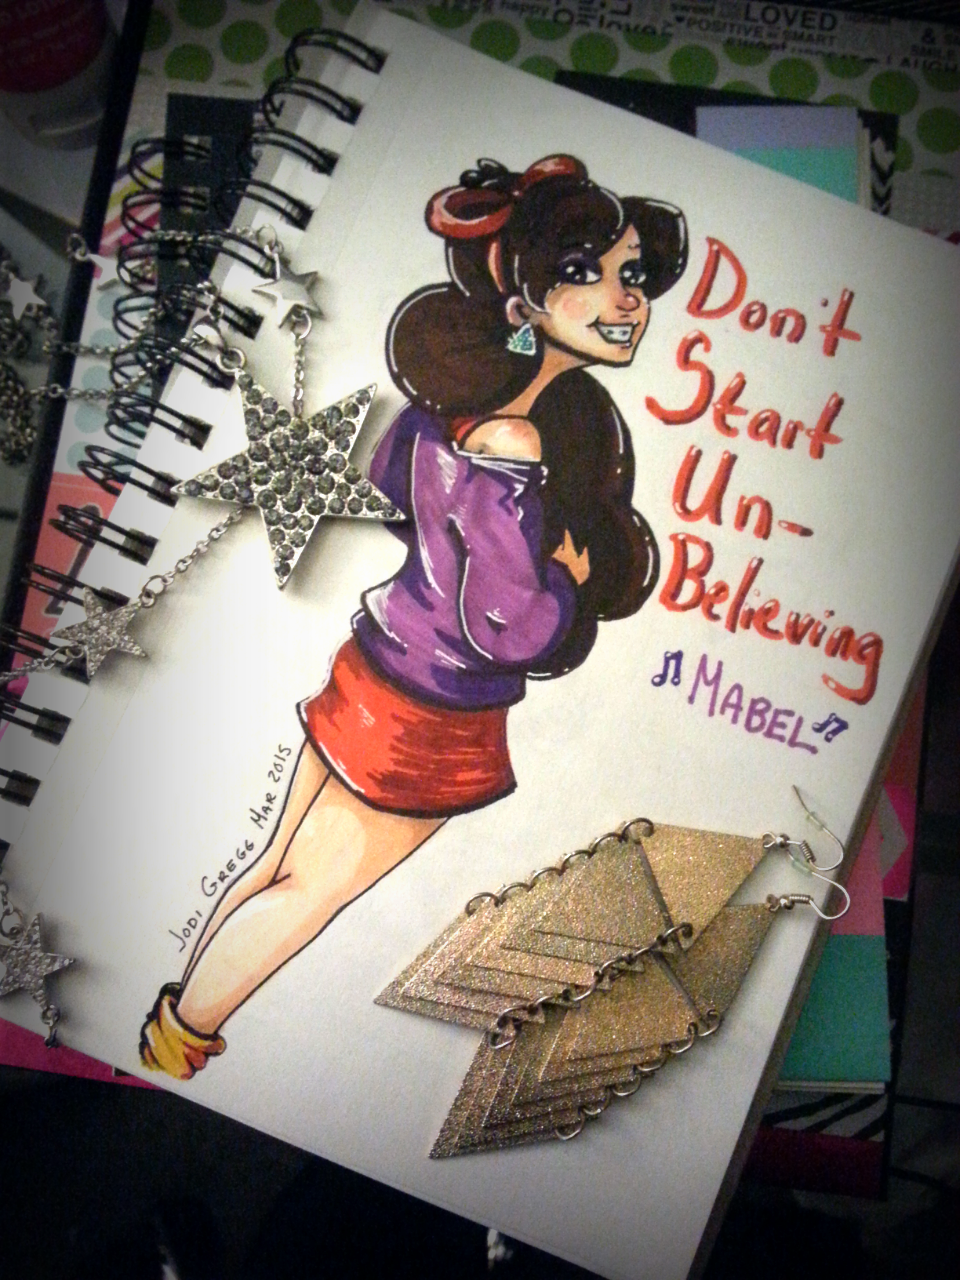 Don't Start Unbelieving, Mabel